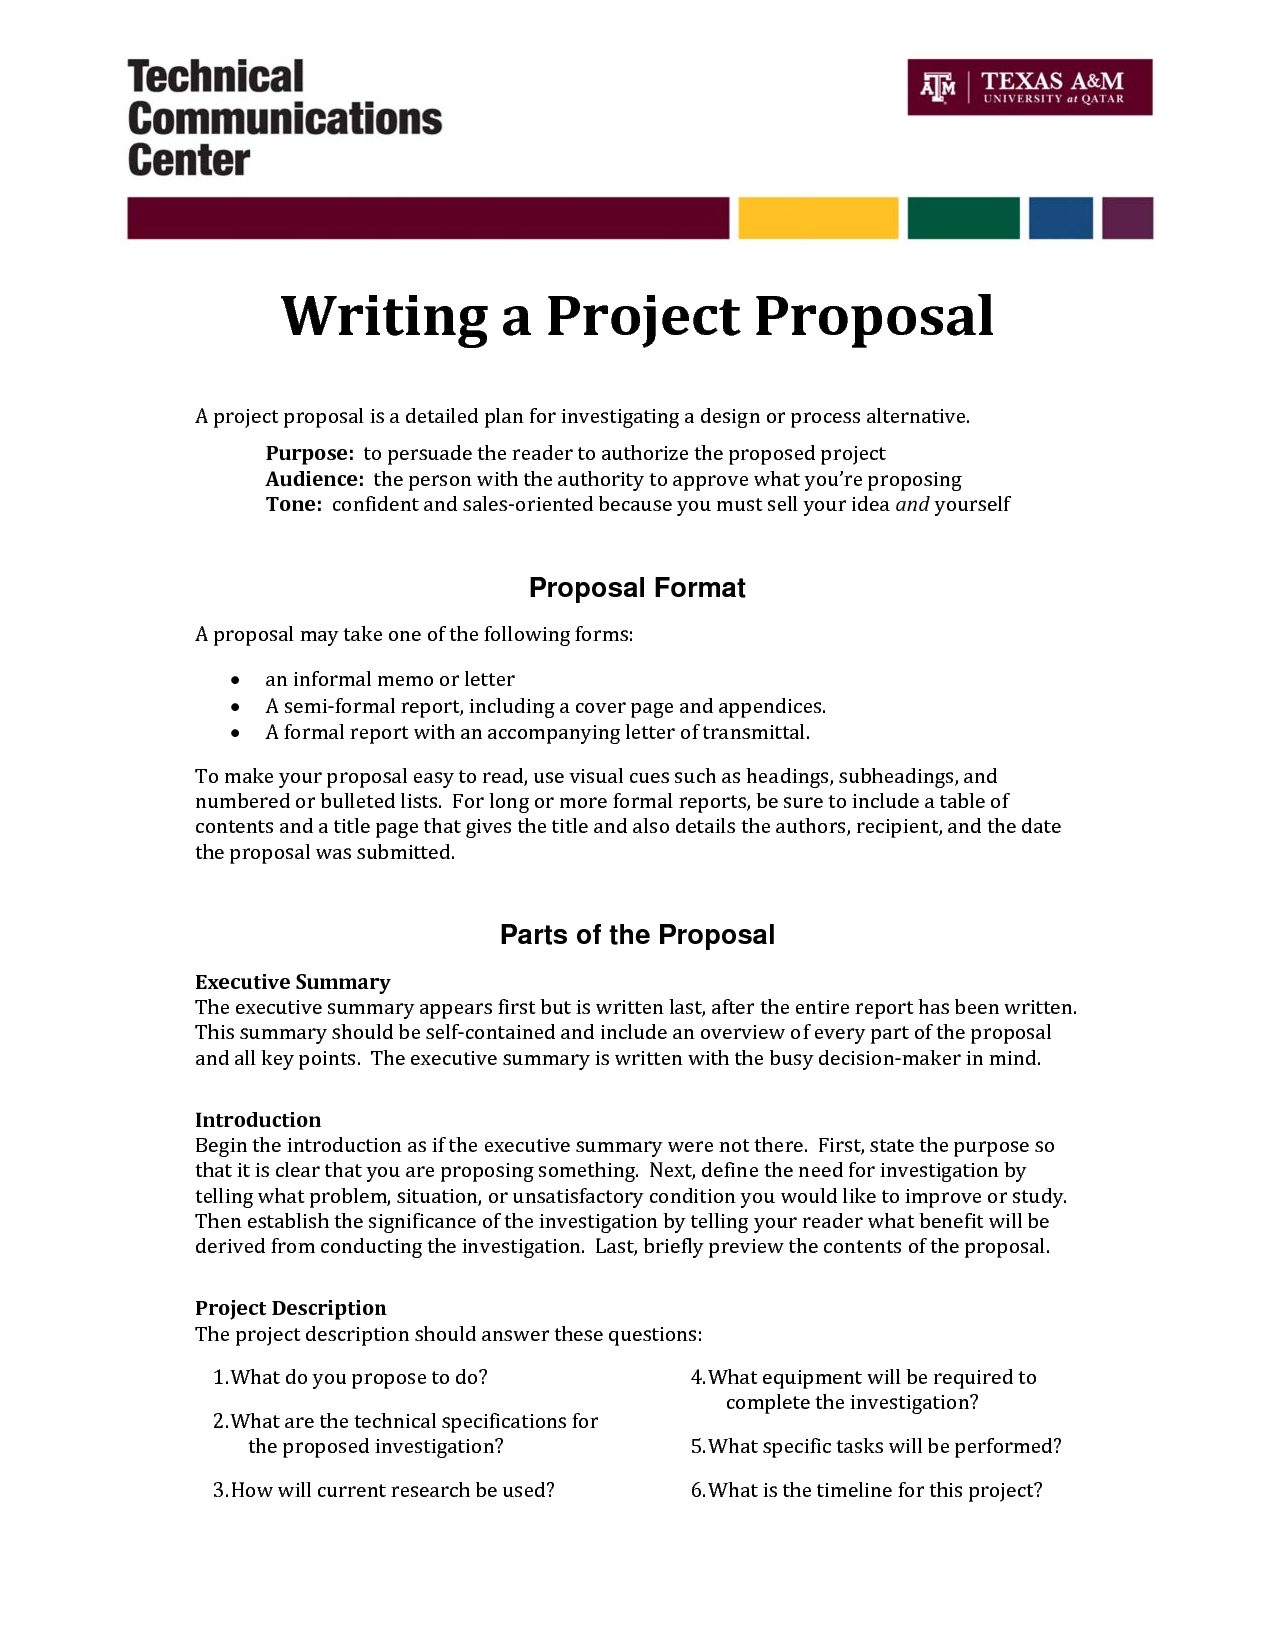 Informal proposal letter example writing a project for How to find a good builder in your area